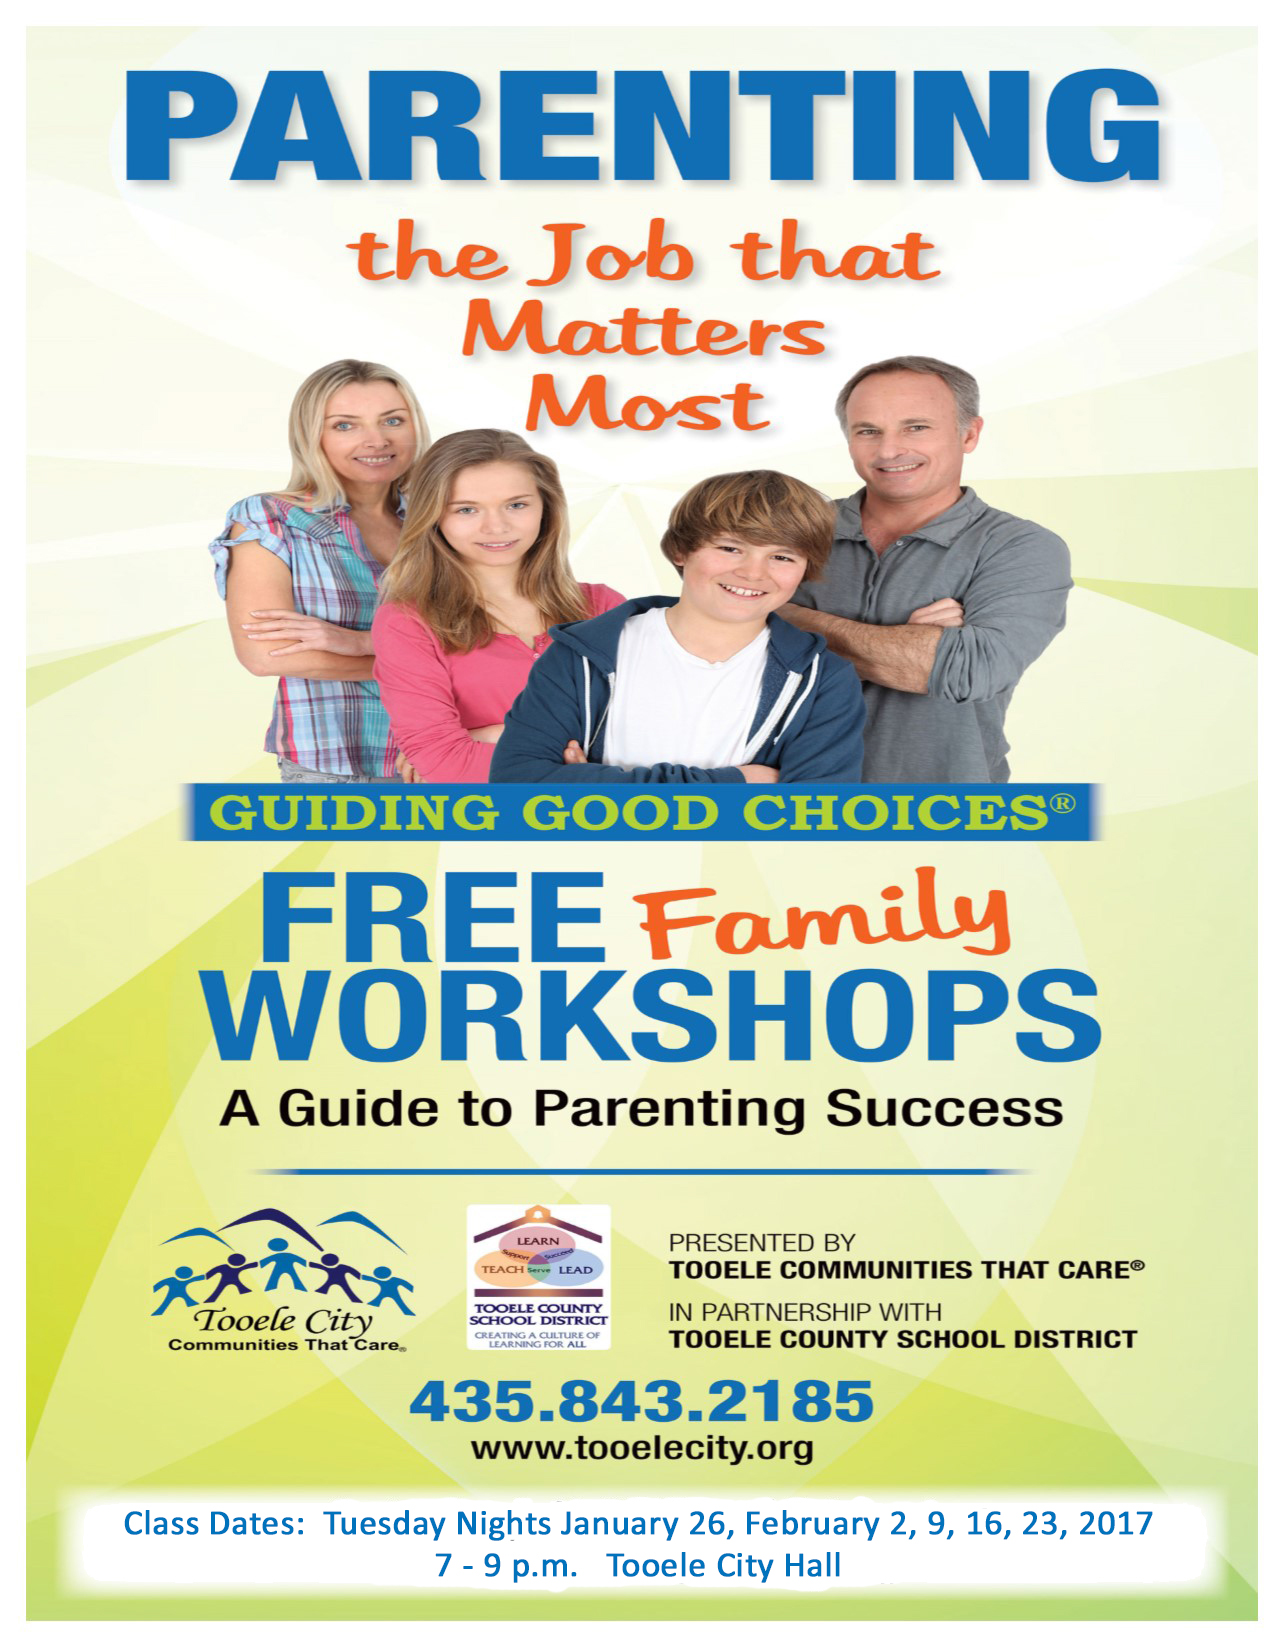 Guiding Good Choices FREE Parenting & Family Workshops (Thursday Nights) @ Tooele City Hall | Tooele | Utah | United States